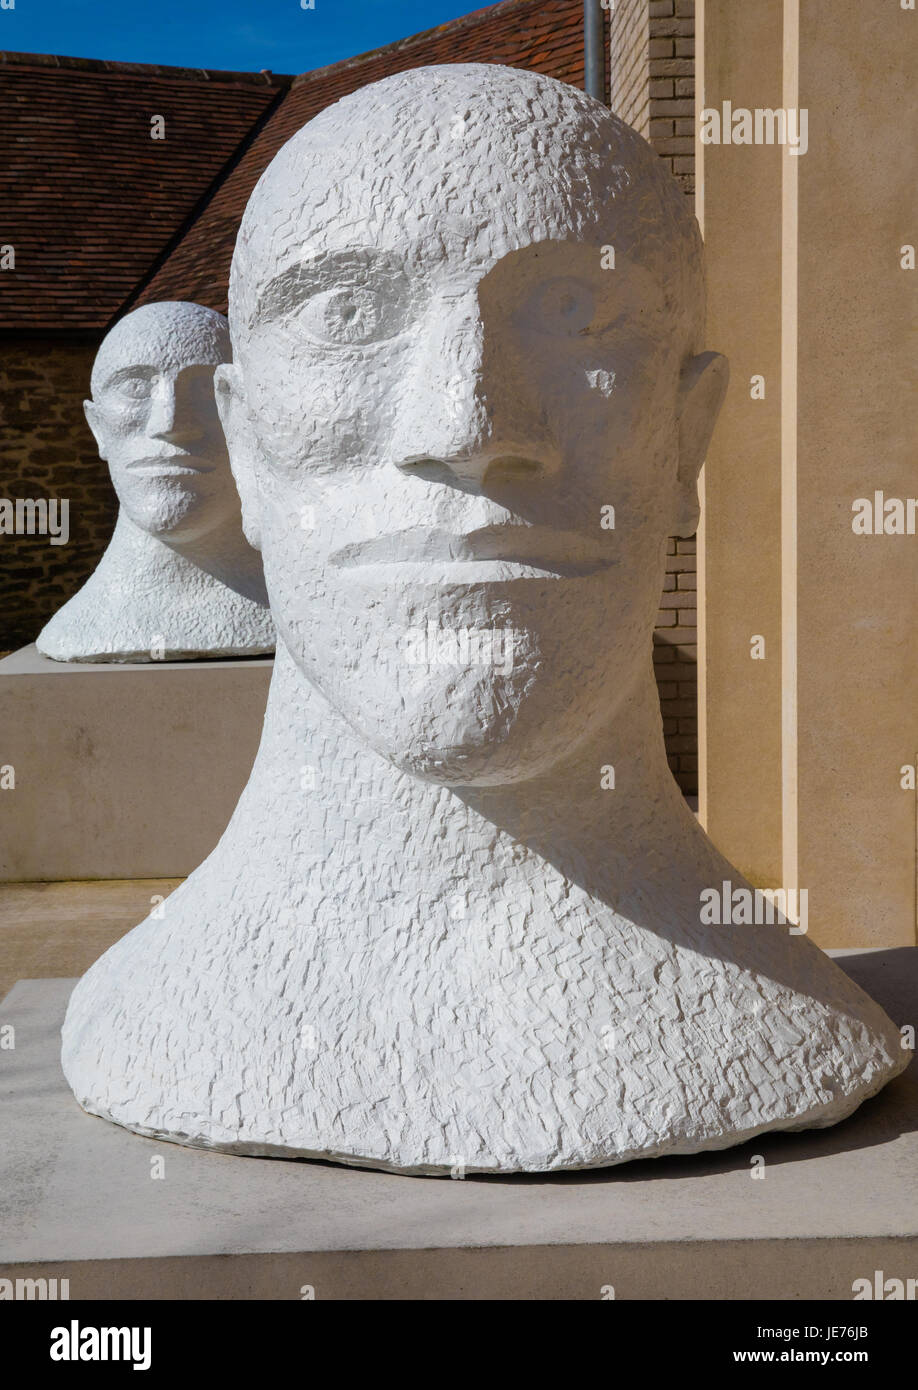 Two bronze male head sculptures in white surfaced bronze from the Desert Quartet series by sculptor Elizabeth Frink - Stock Image